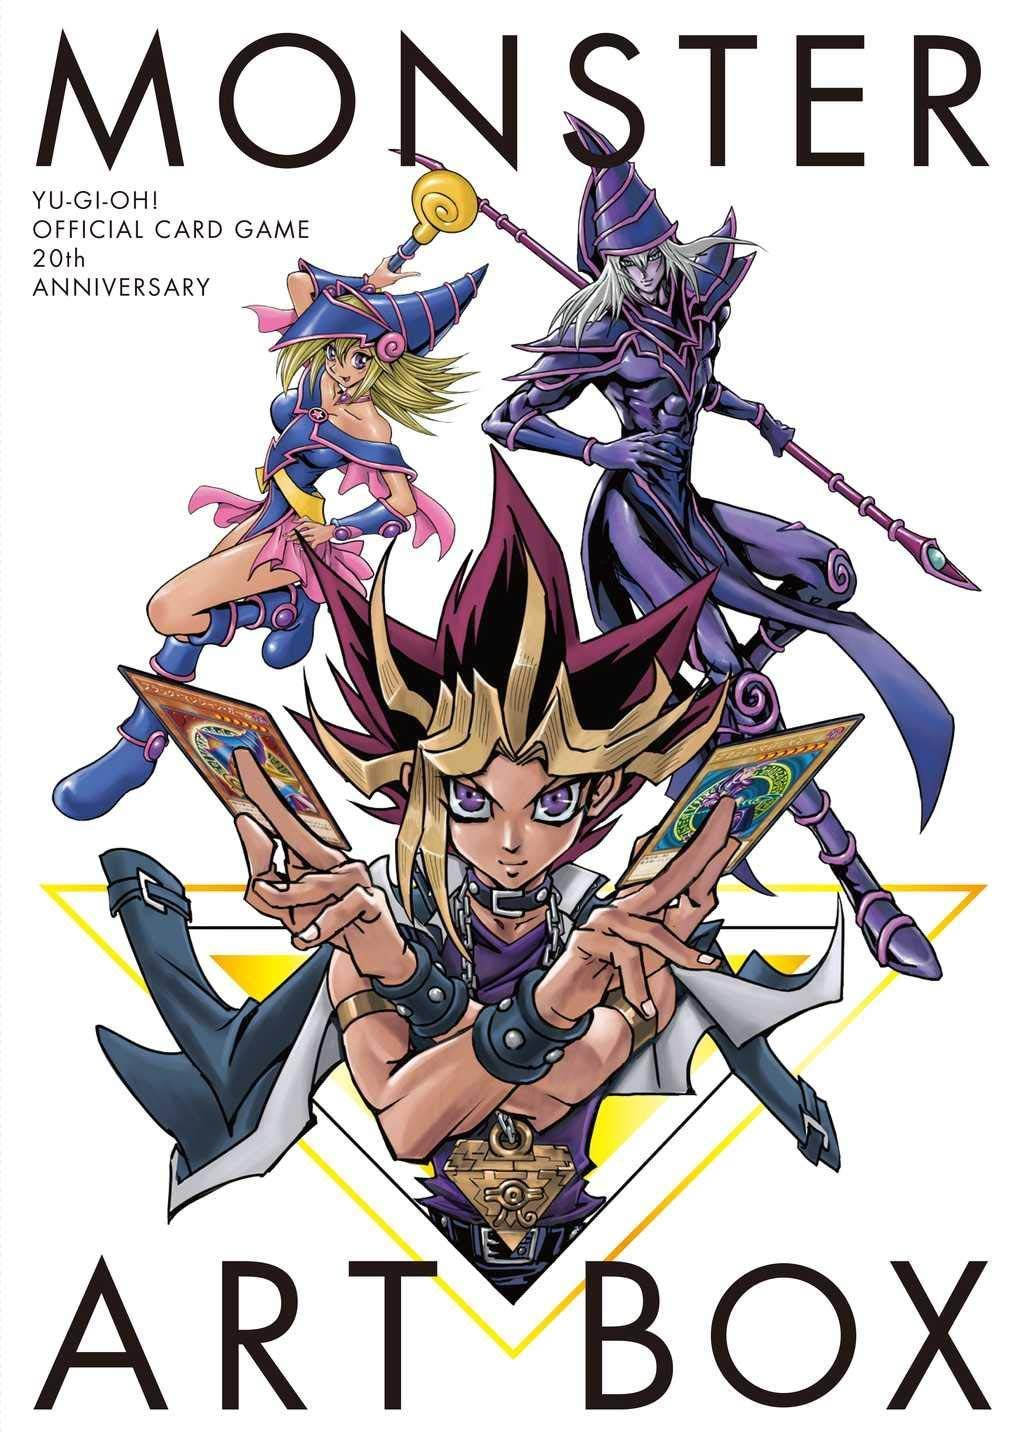 YU-GI-OH! Official Card Game 3th ANNIVERSARY MONSTER ART BOX